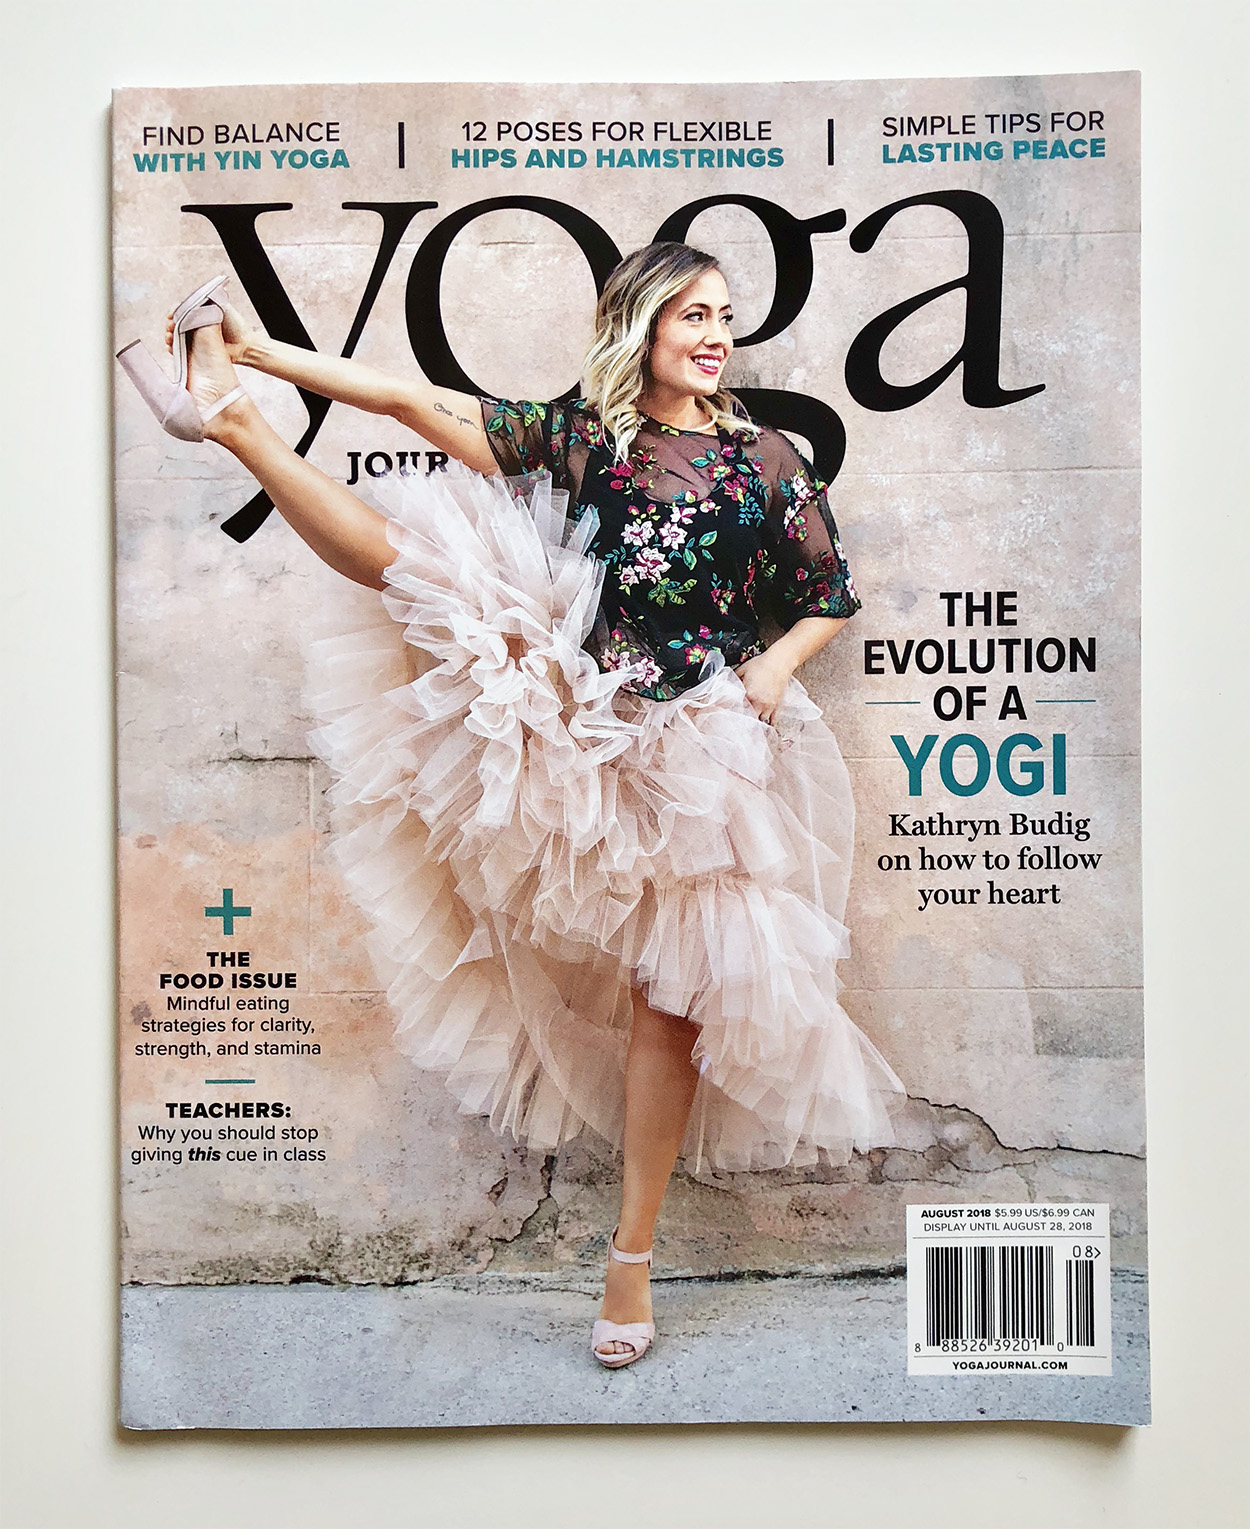 Vira Sun x Yoga Journal